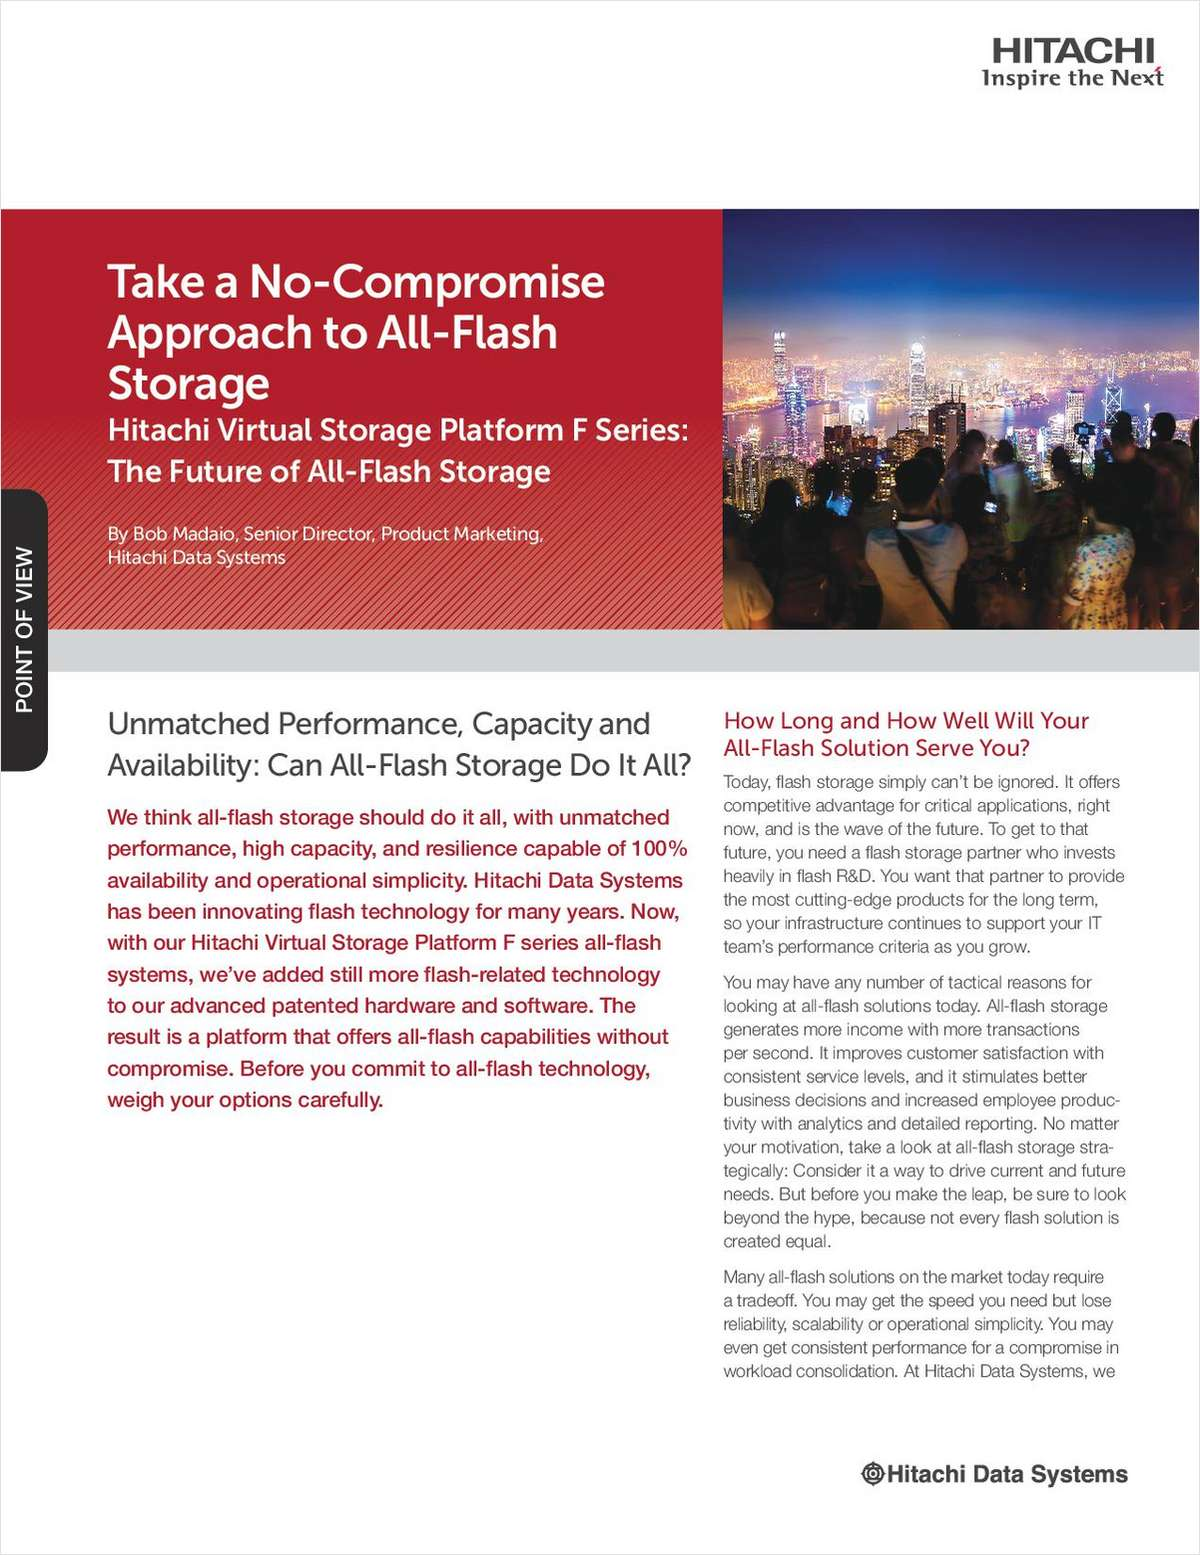 Take A No-Compromise Approach to All-Flash Storage